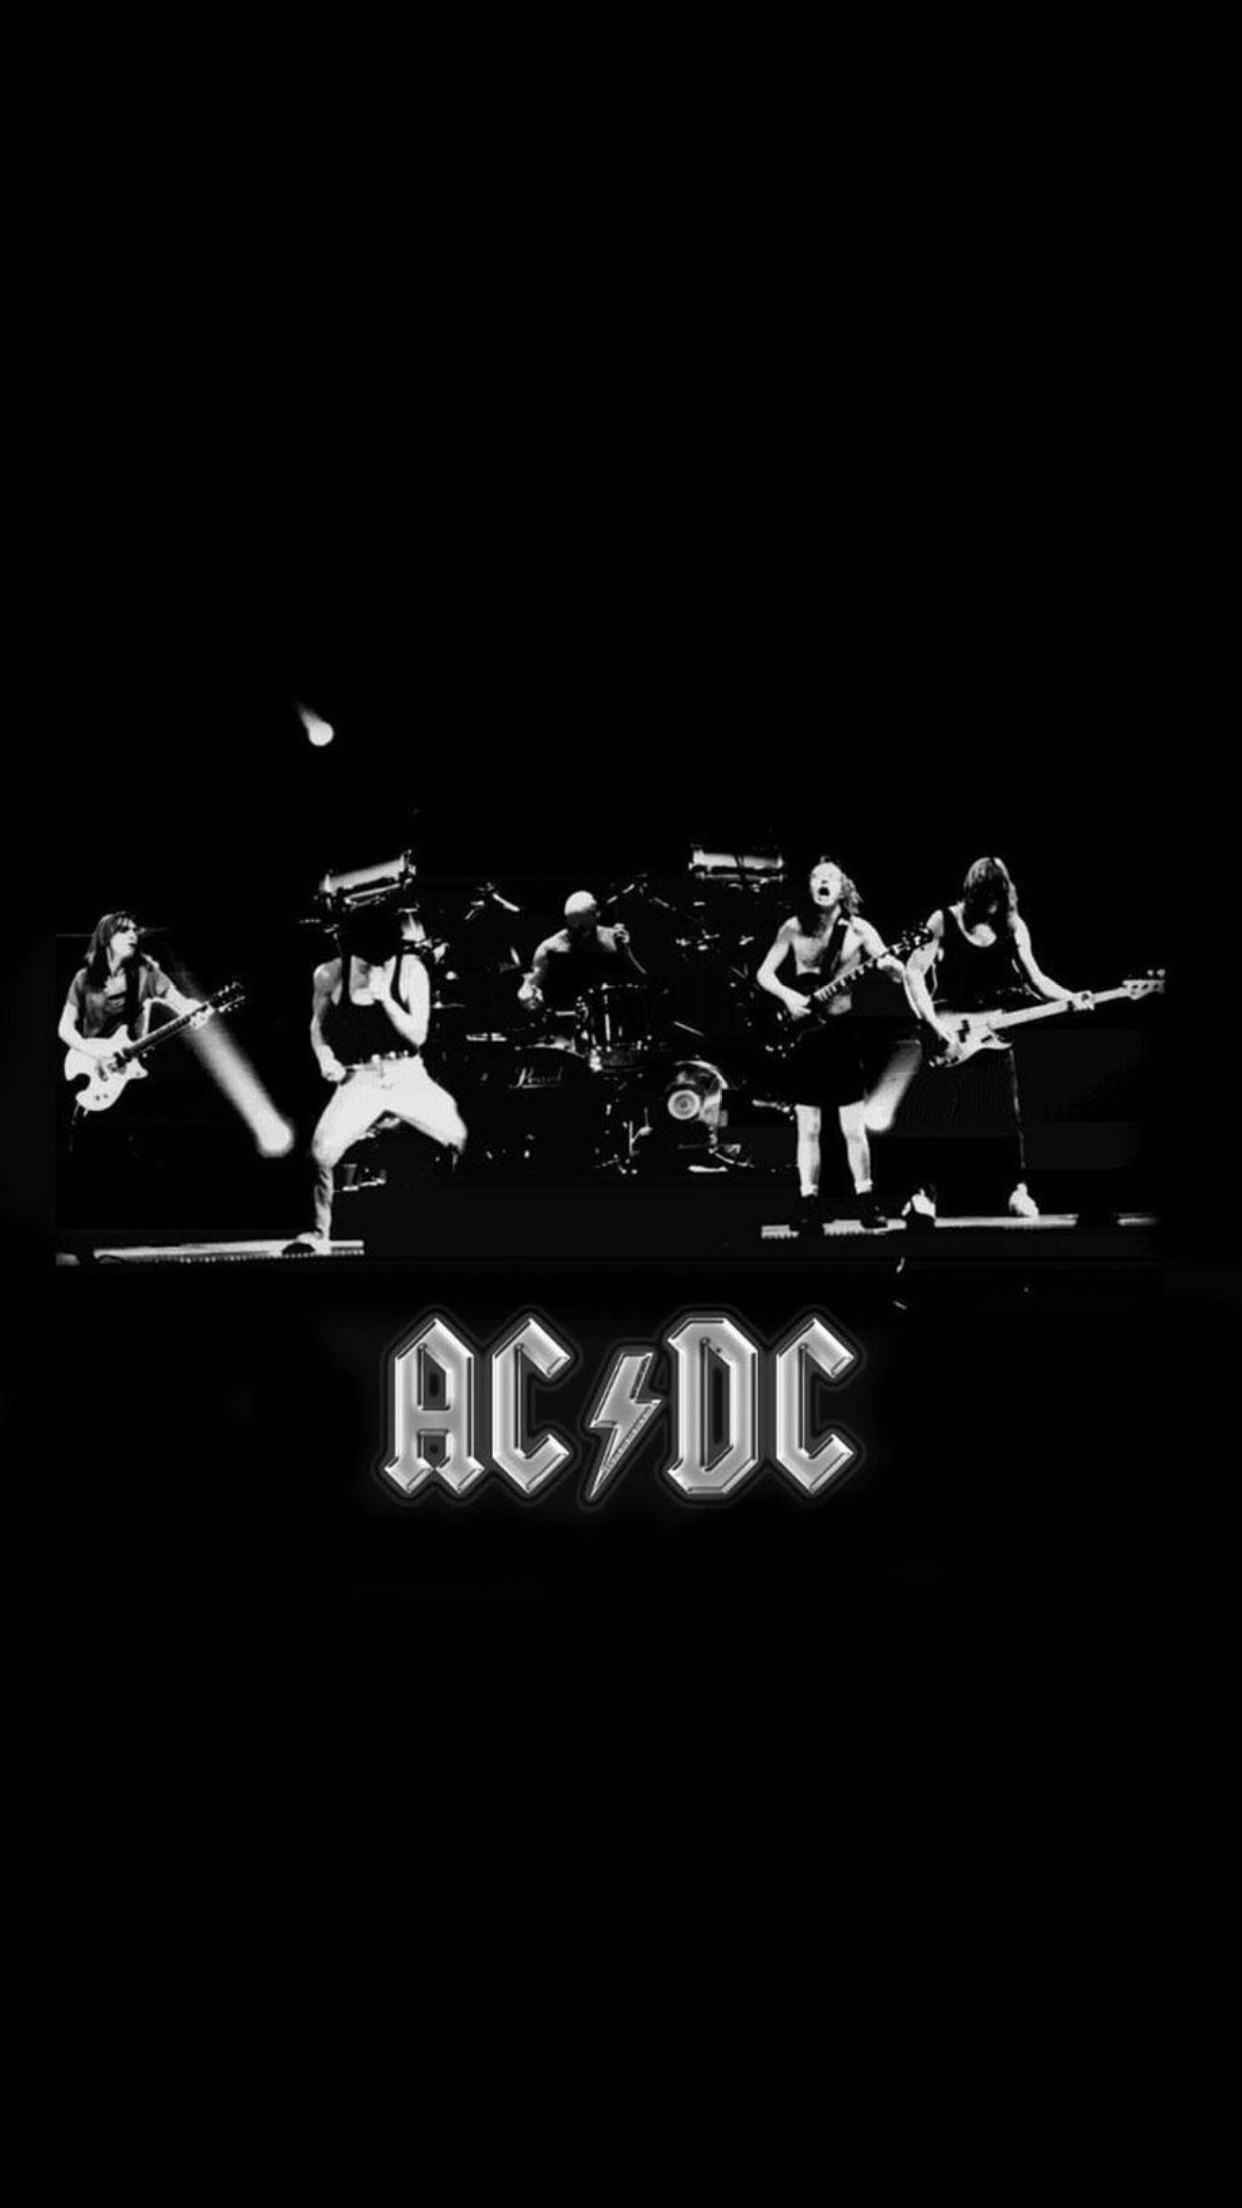 Red And Black Graffiti Wallpaper Ac Dc Group Wallpaper For Iphone X 8 7 6 Free